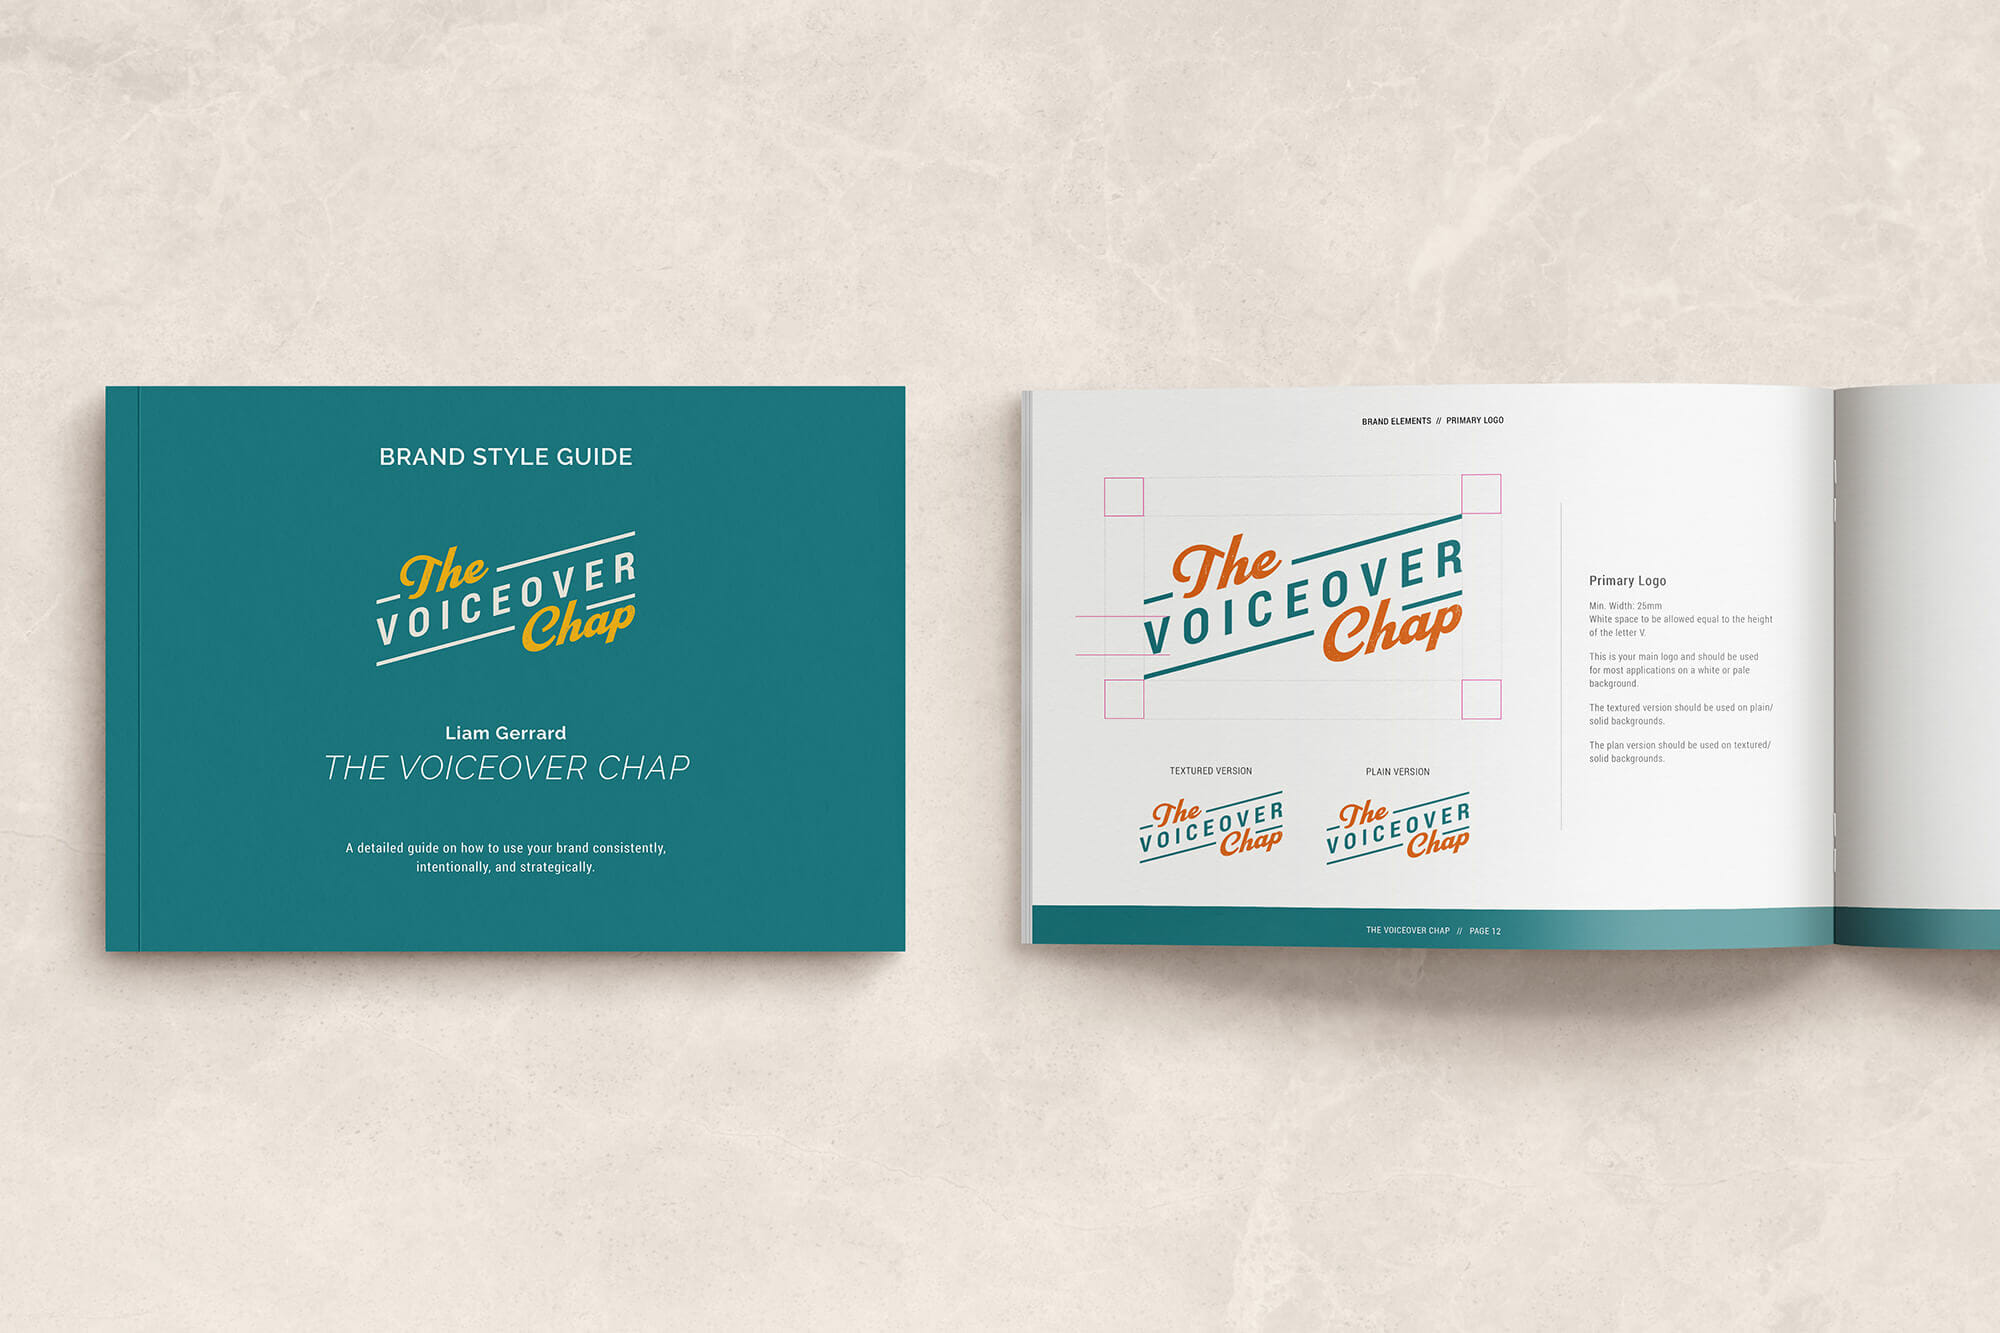 Logo in brand book - branding and website design for The Voiceover Chap Liam Gerrard